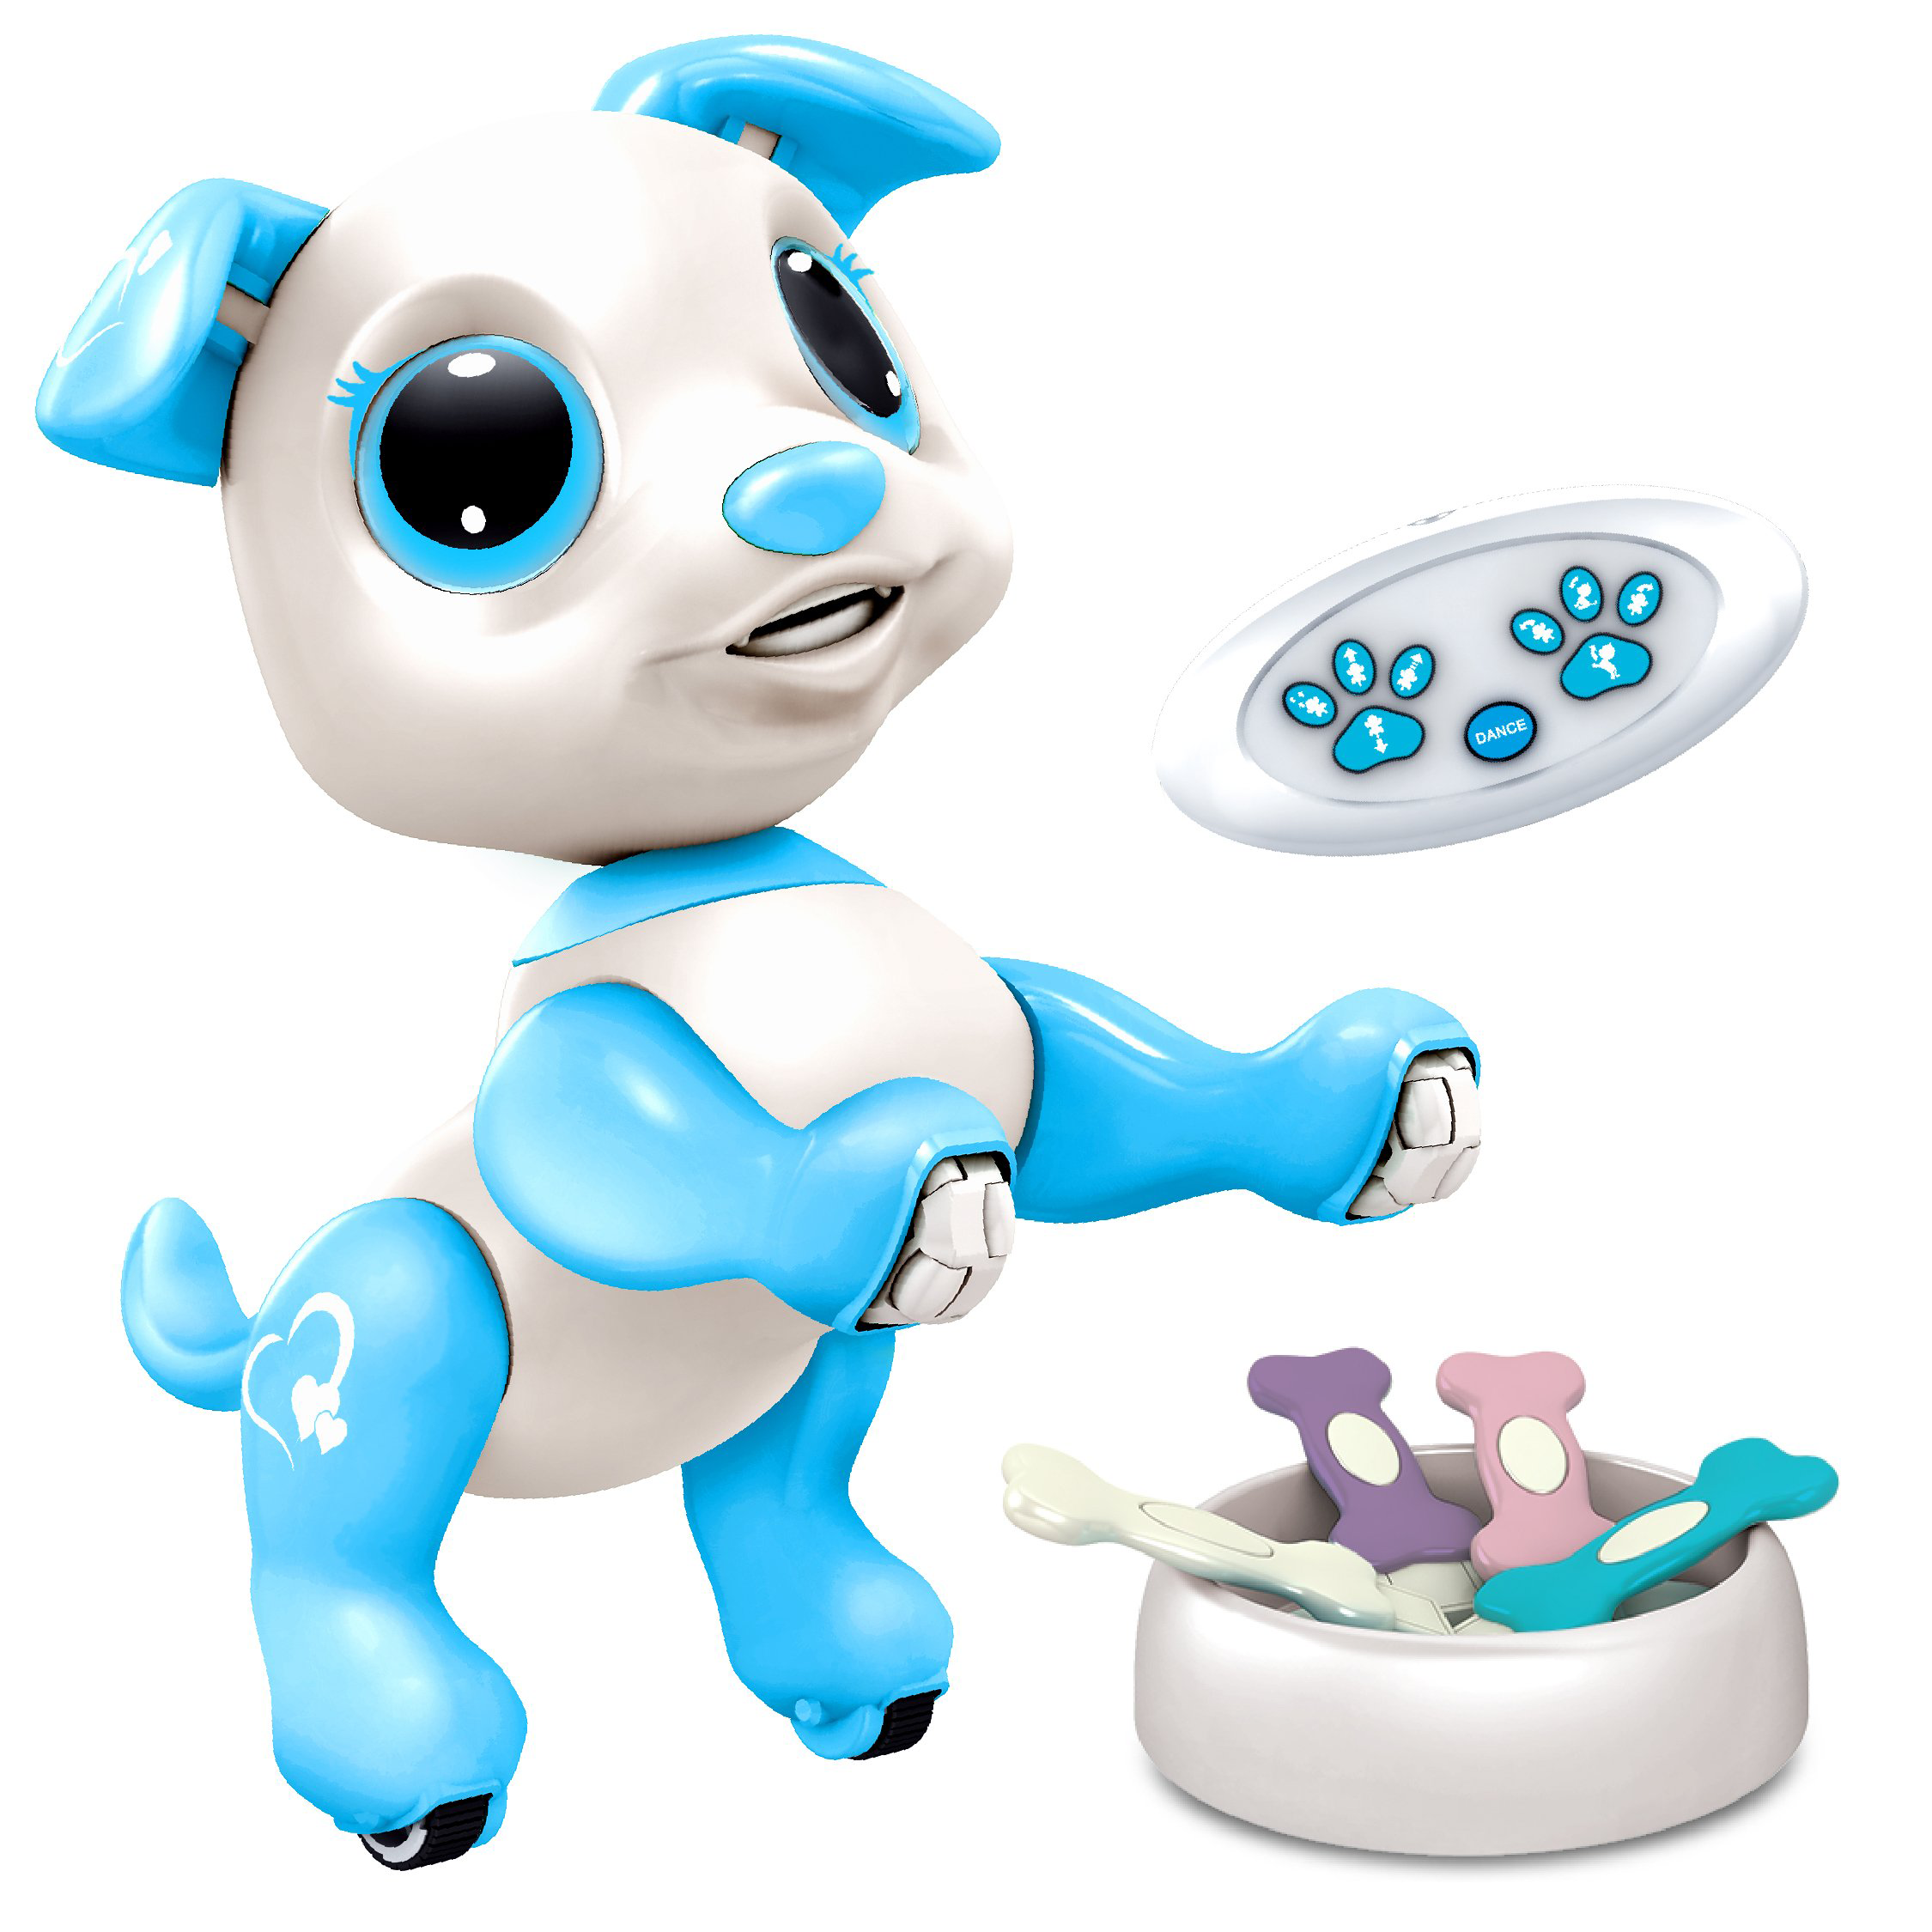 Robo Pets Puppy Dog Remote Control Toy - poweryourfun